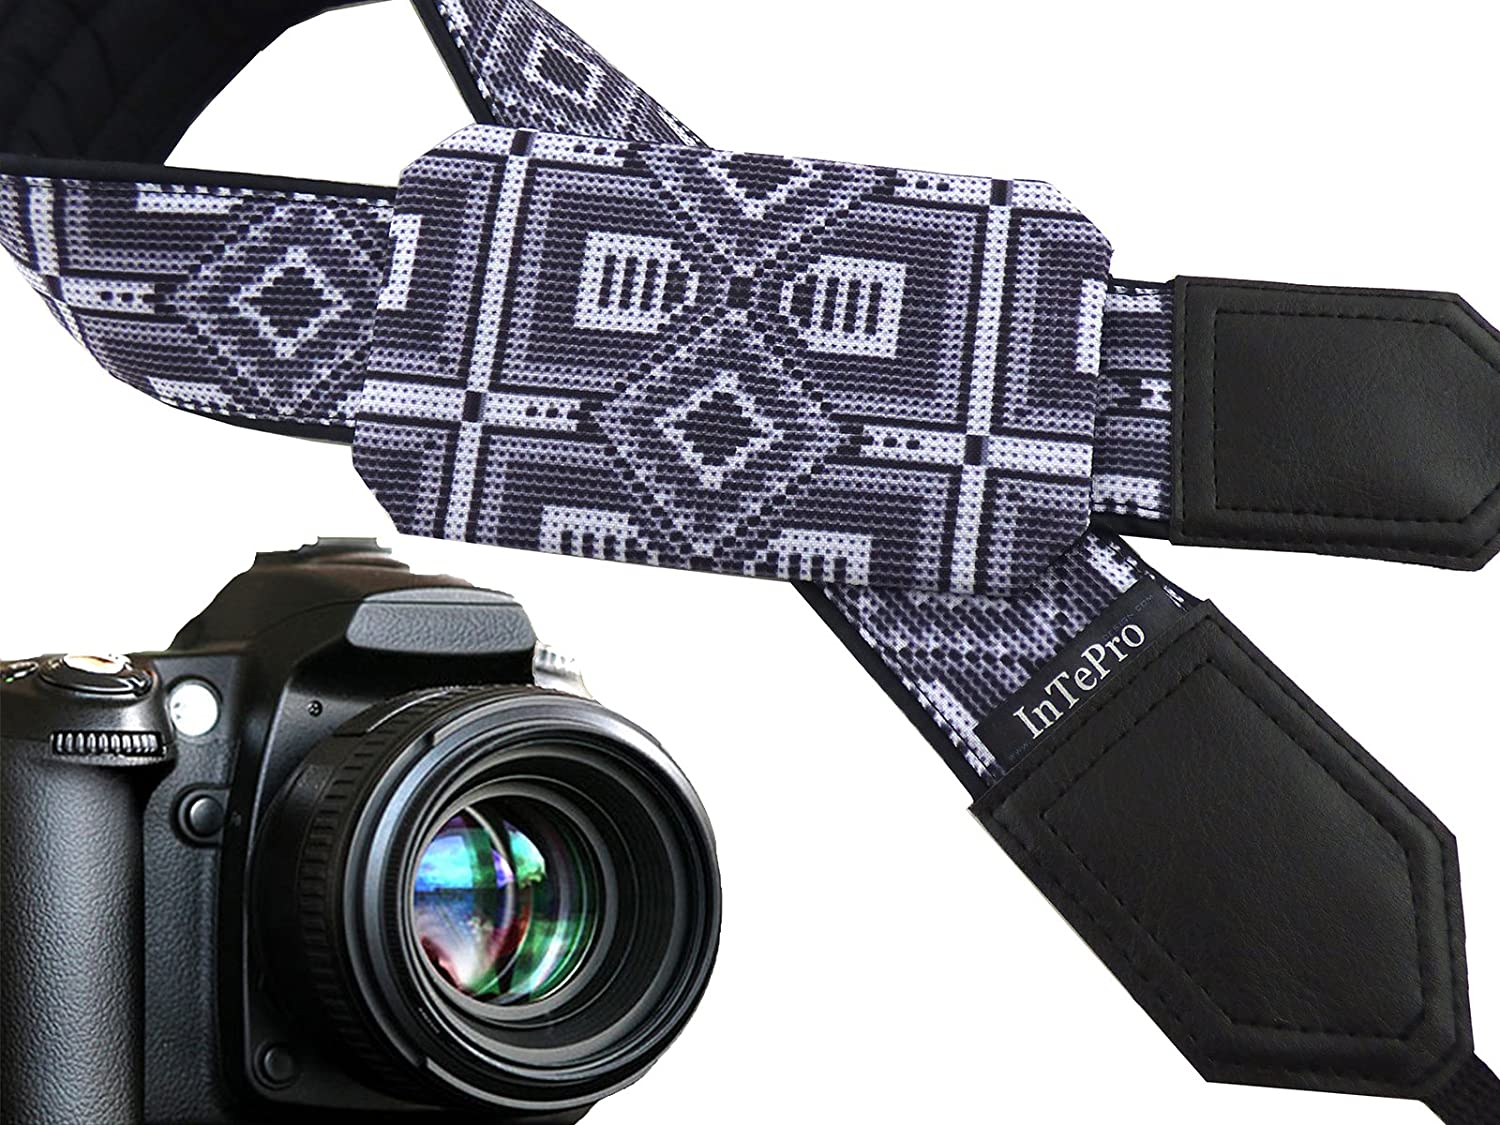 00390 Grey Native American Inspired Camera Strap with Pocket Unisex Strap for Amateurs and Professionals Modest Strap for DSLR and SLR Cameras